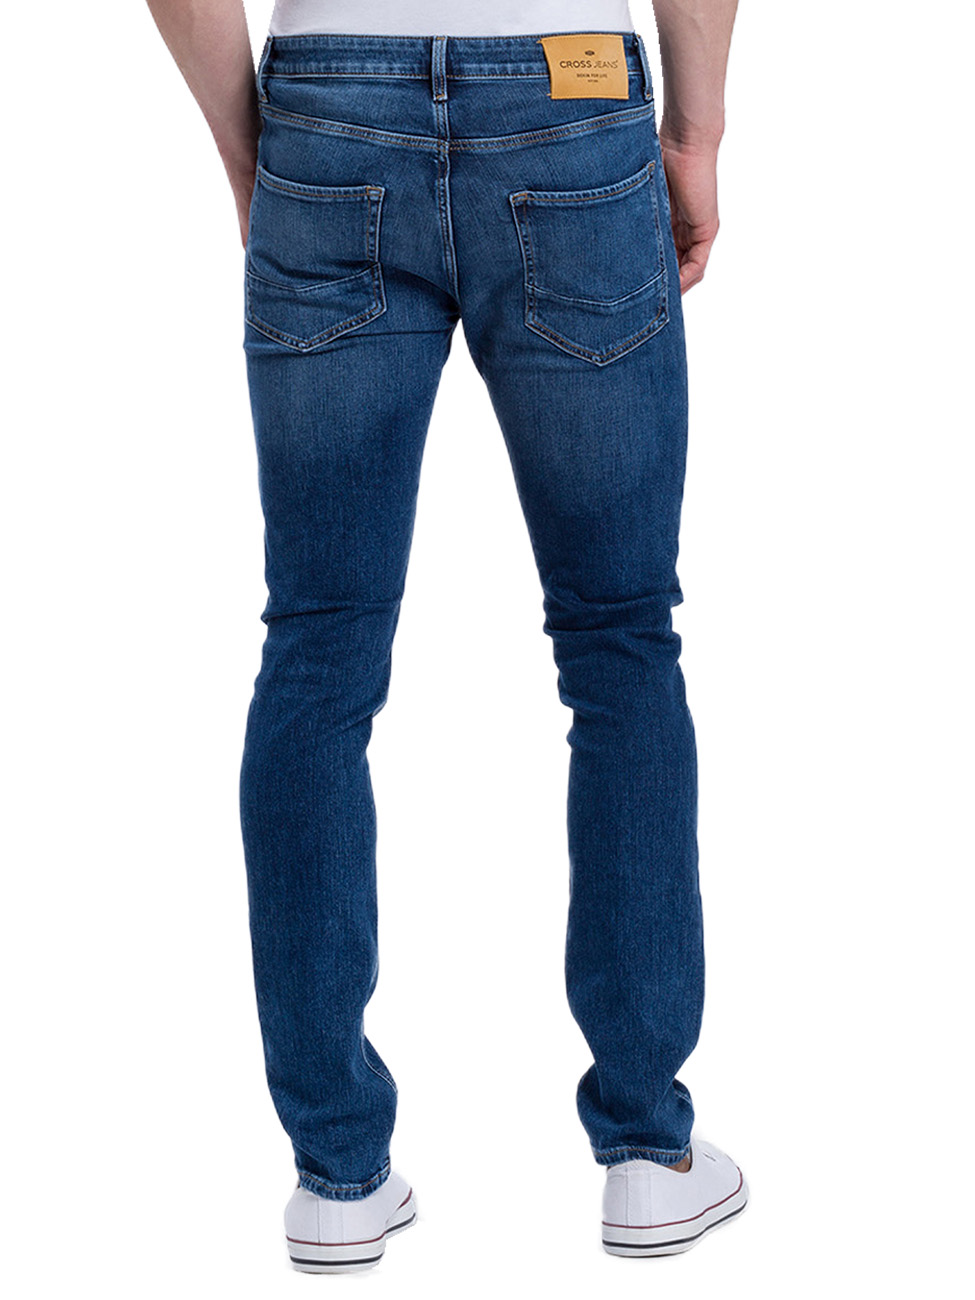 cross-jeans-herren-jeans-travis-skinny-fit-tapered-leg-blau-mid-blue-used